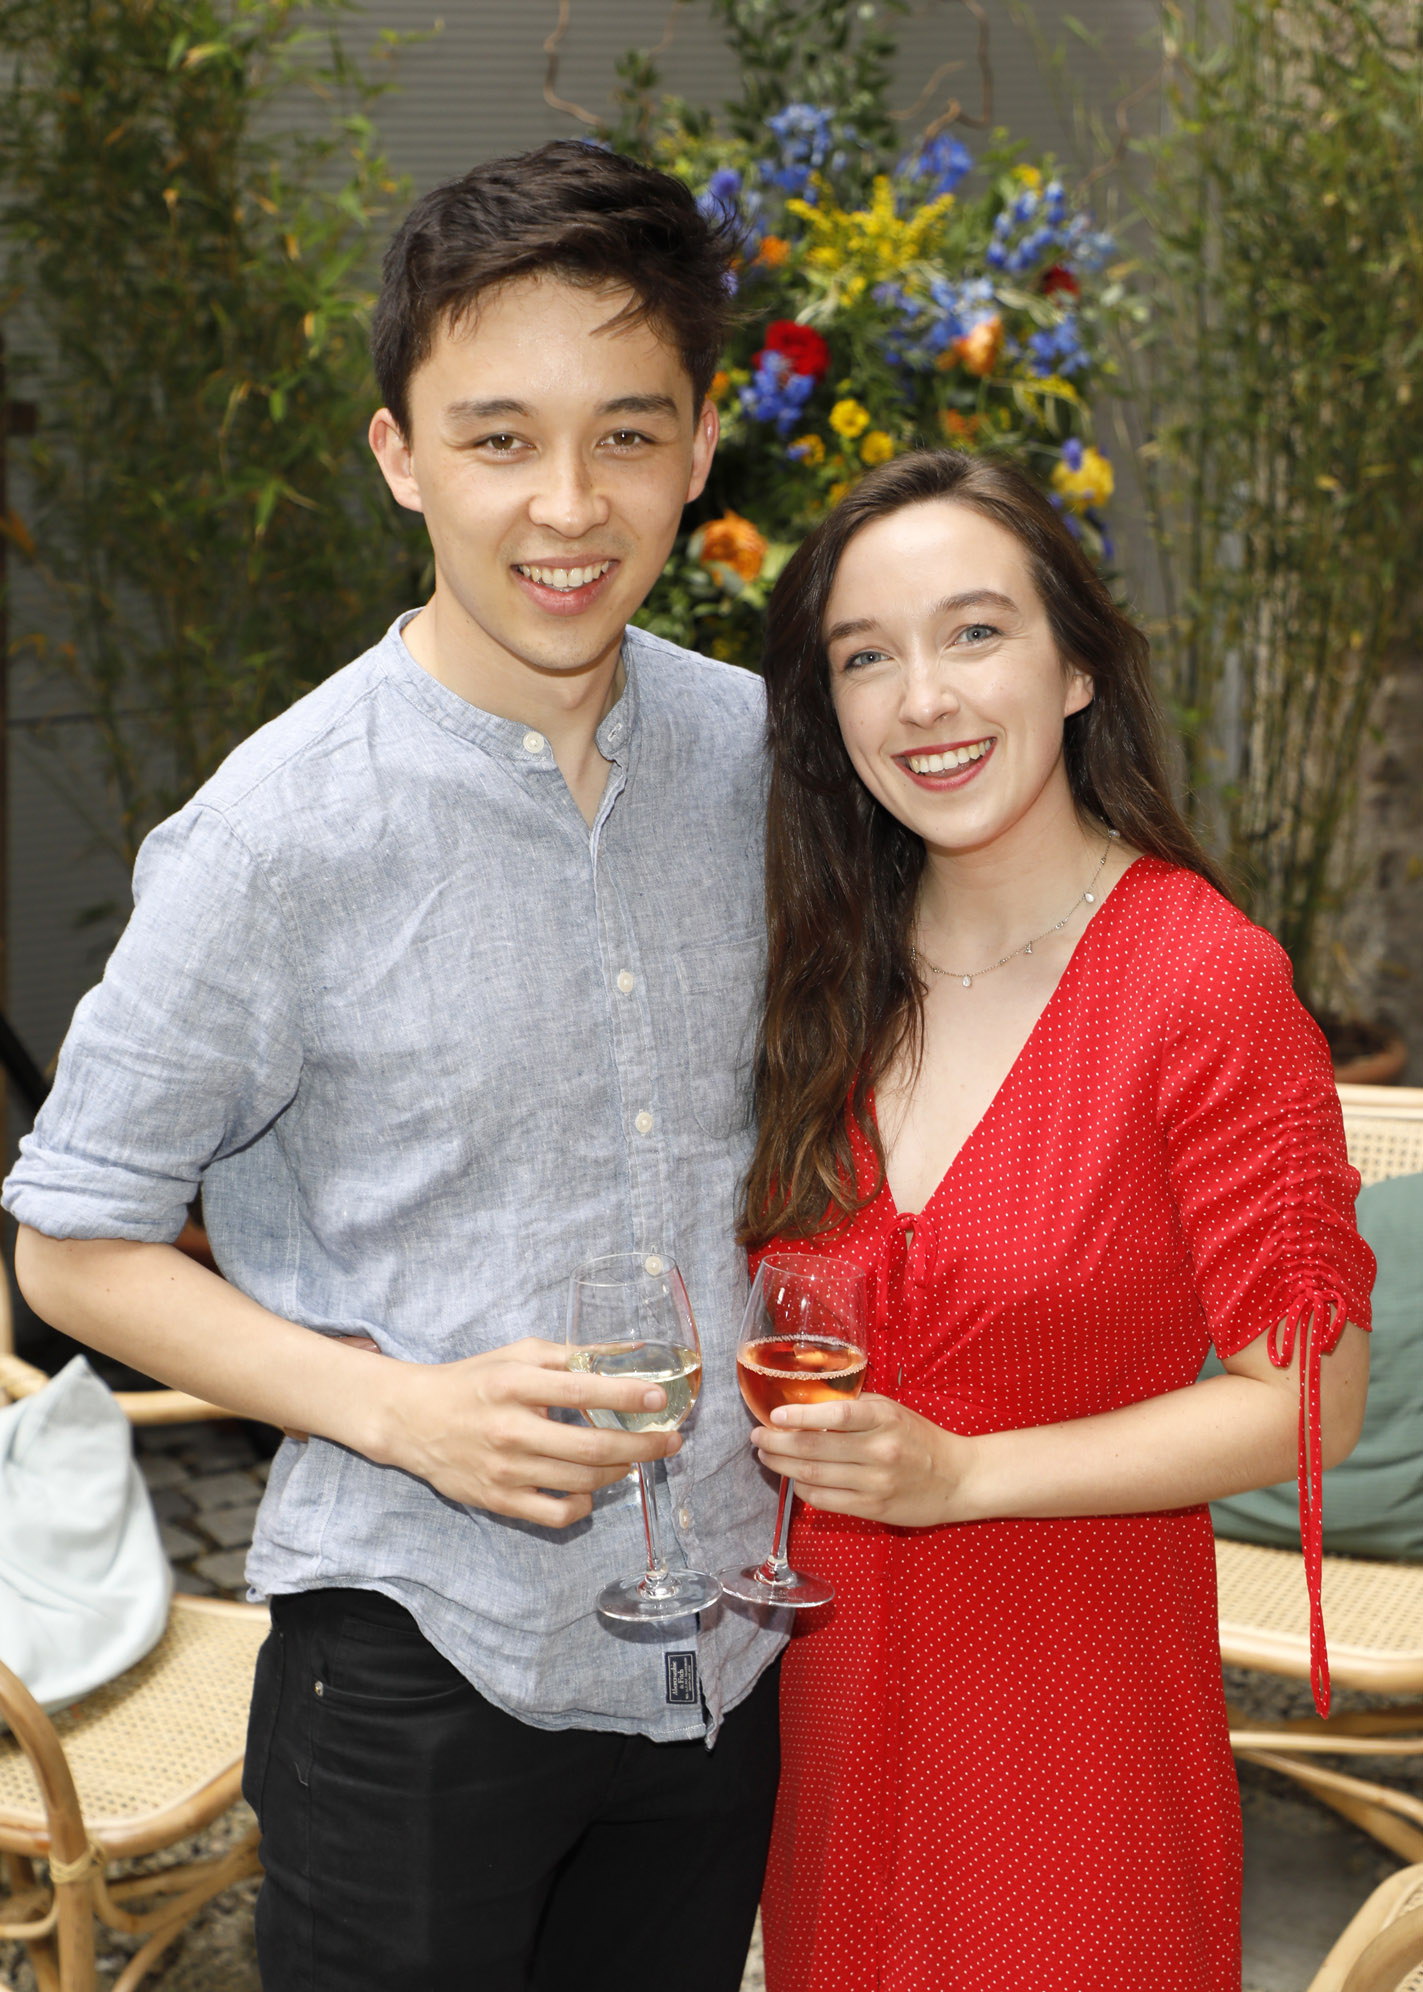 Kymann Russell and Aine Leech at the Centra 'Wines We Love' event in Dublin. Photo: Kieran Harnett